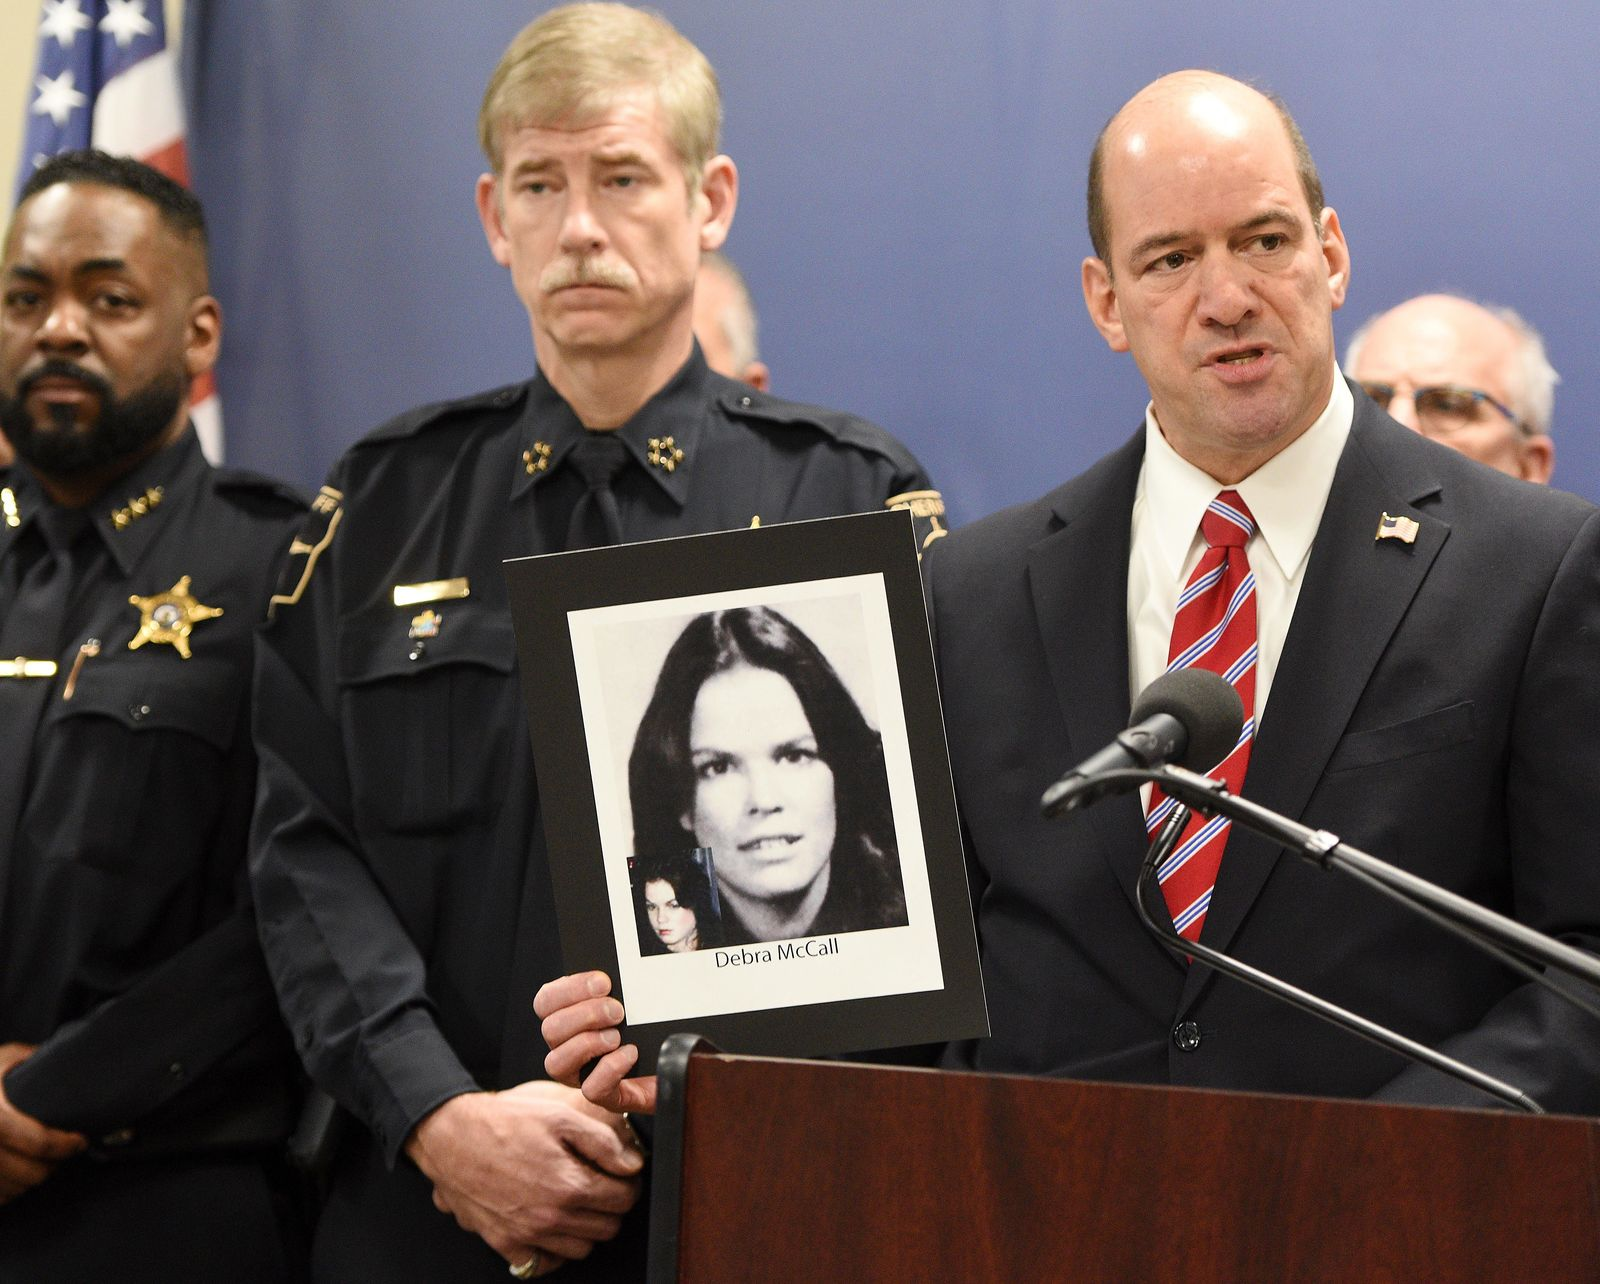 DuPage County state's attorney Robert Berlin holds up a photo of Debra McCall, a victim of an unsolved murder that they thought the suspect was Bruce Lindahl, as he spoke during a press conference in Wheaton, Ill., Monday, Jan. 13, 2020. Lindahl strangled a suburban Chicago teenage girl in 1976 and likely killed McCall just days before she was to testify in court that he raped her, police said Monday. (Rick West/Daily Herald via AP)